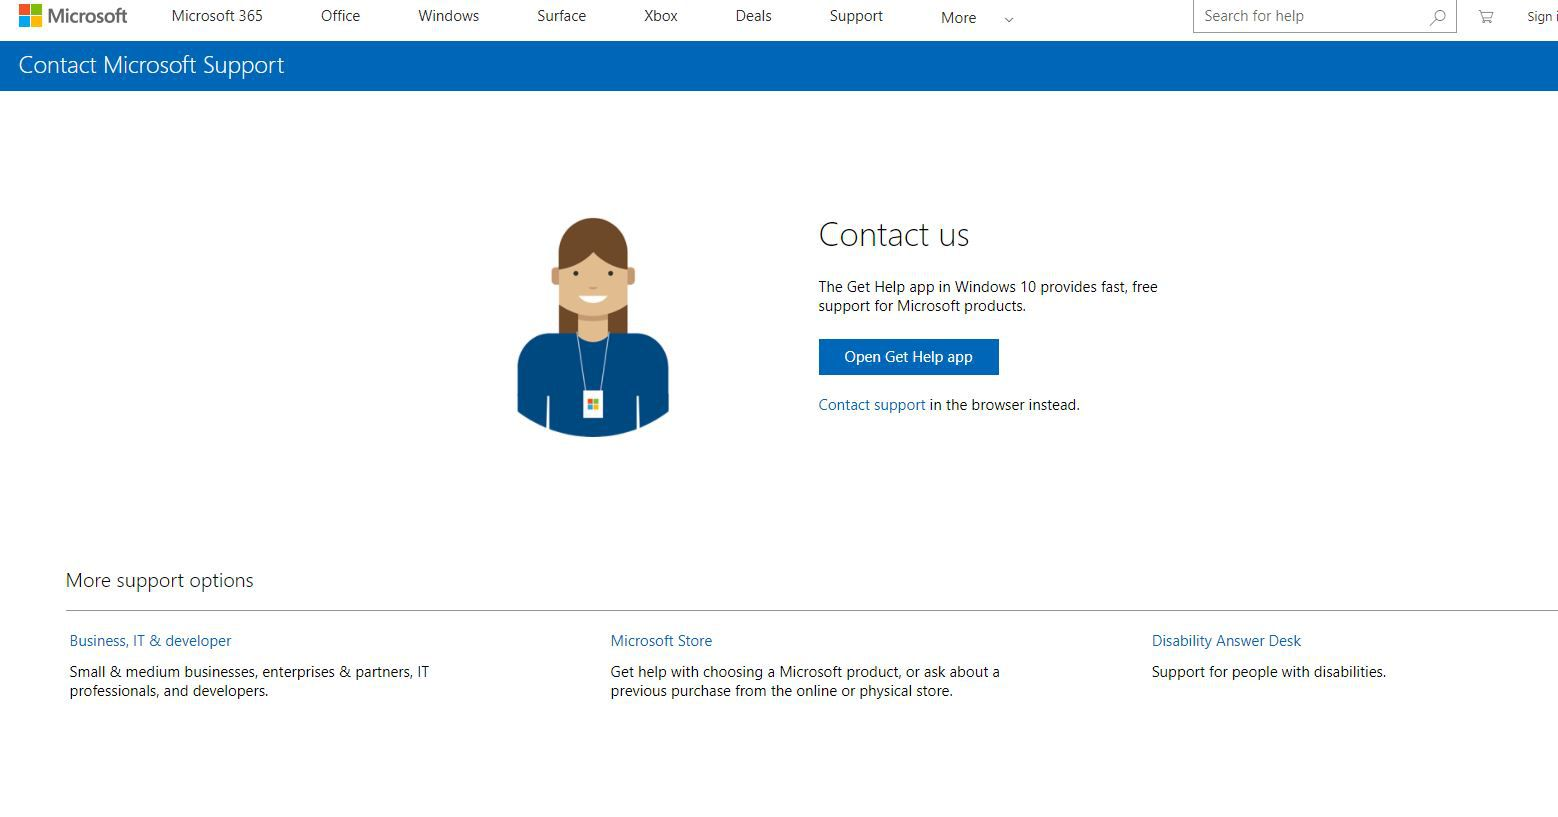 Open Get Help app button on Contact Microsoft Support page